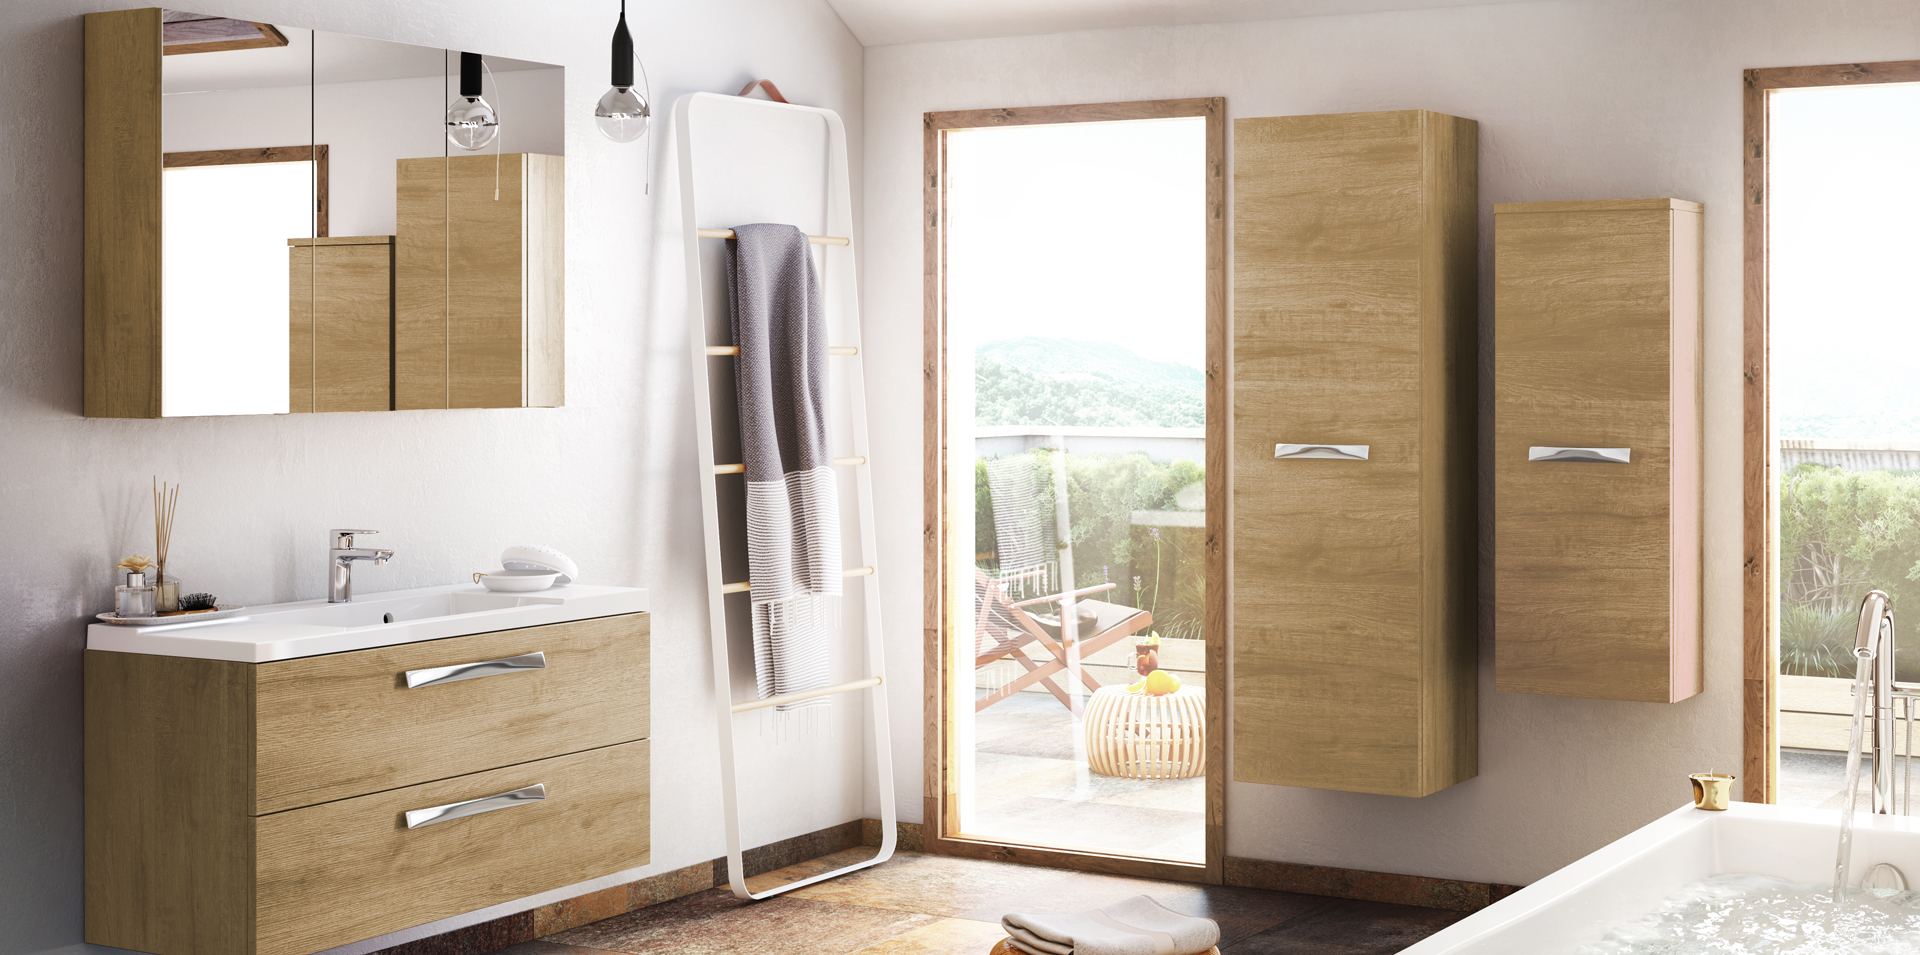 Photo salle de bain design good dco salle de bain design for Brossette salle de bain